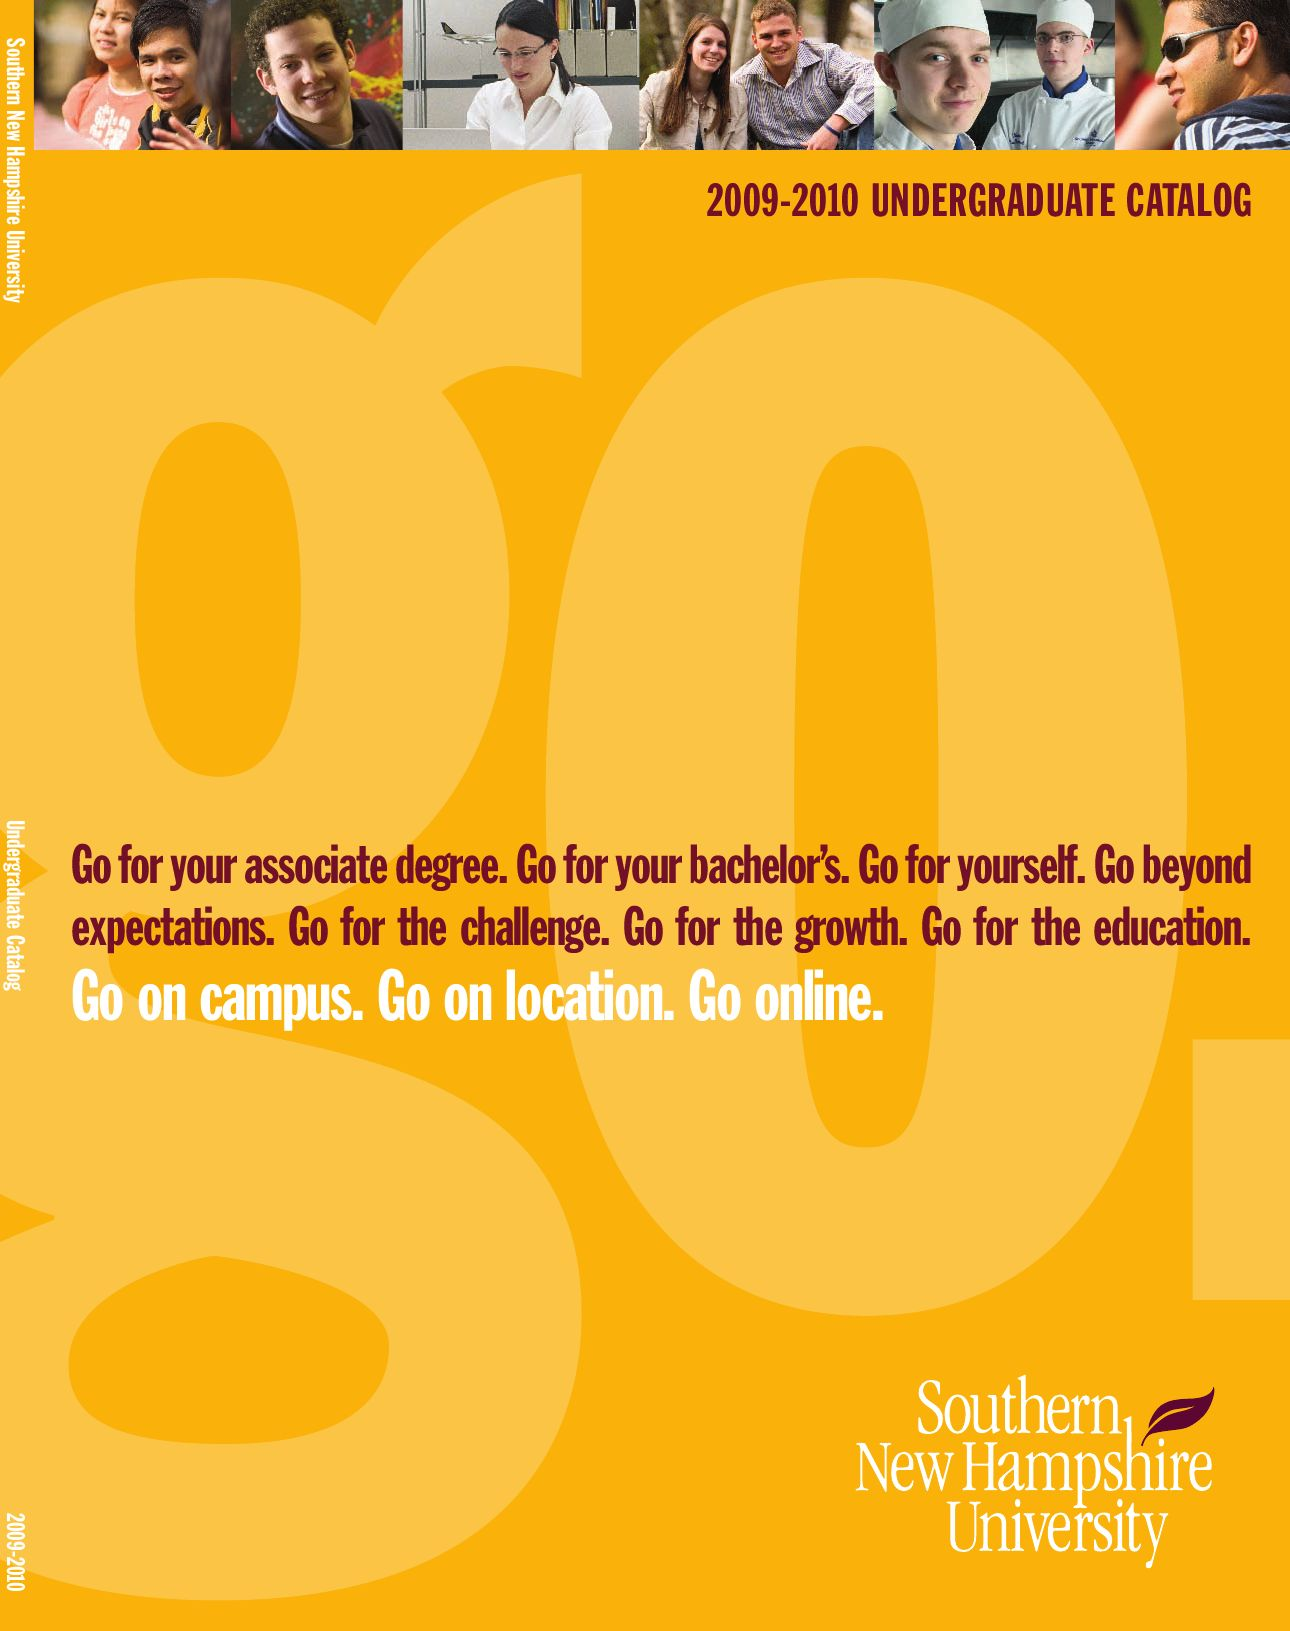 SNHU Undergraduate Catalog 2009 2010 by Southern New Hampshire